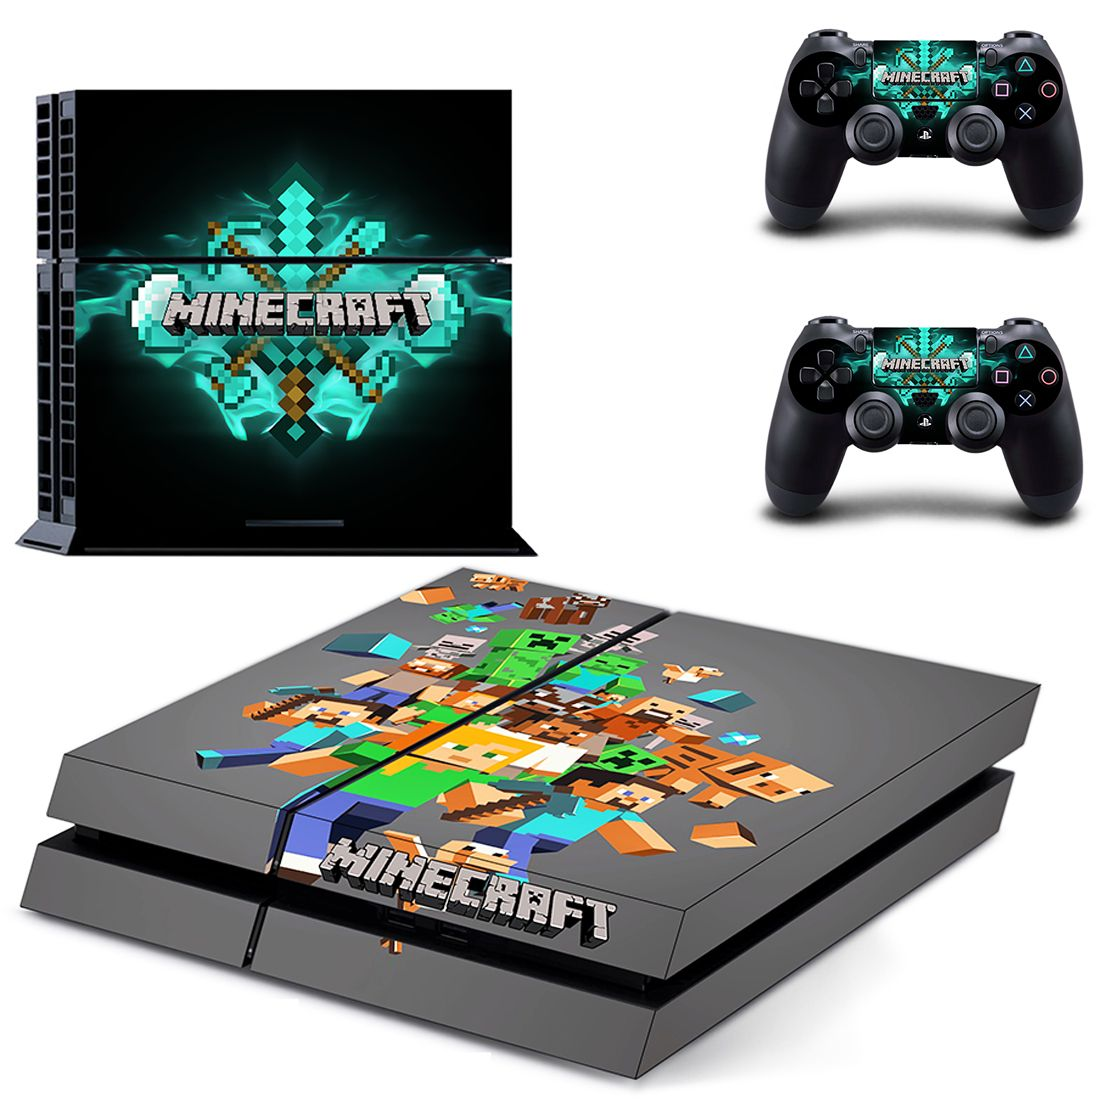 Minecraft Ps4 Slim Skin Sticker Decals Video Games